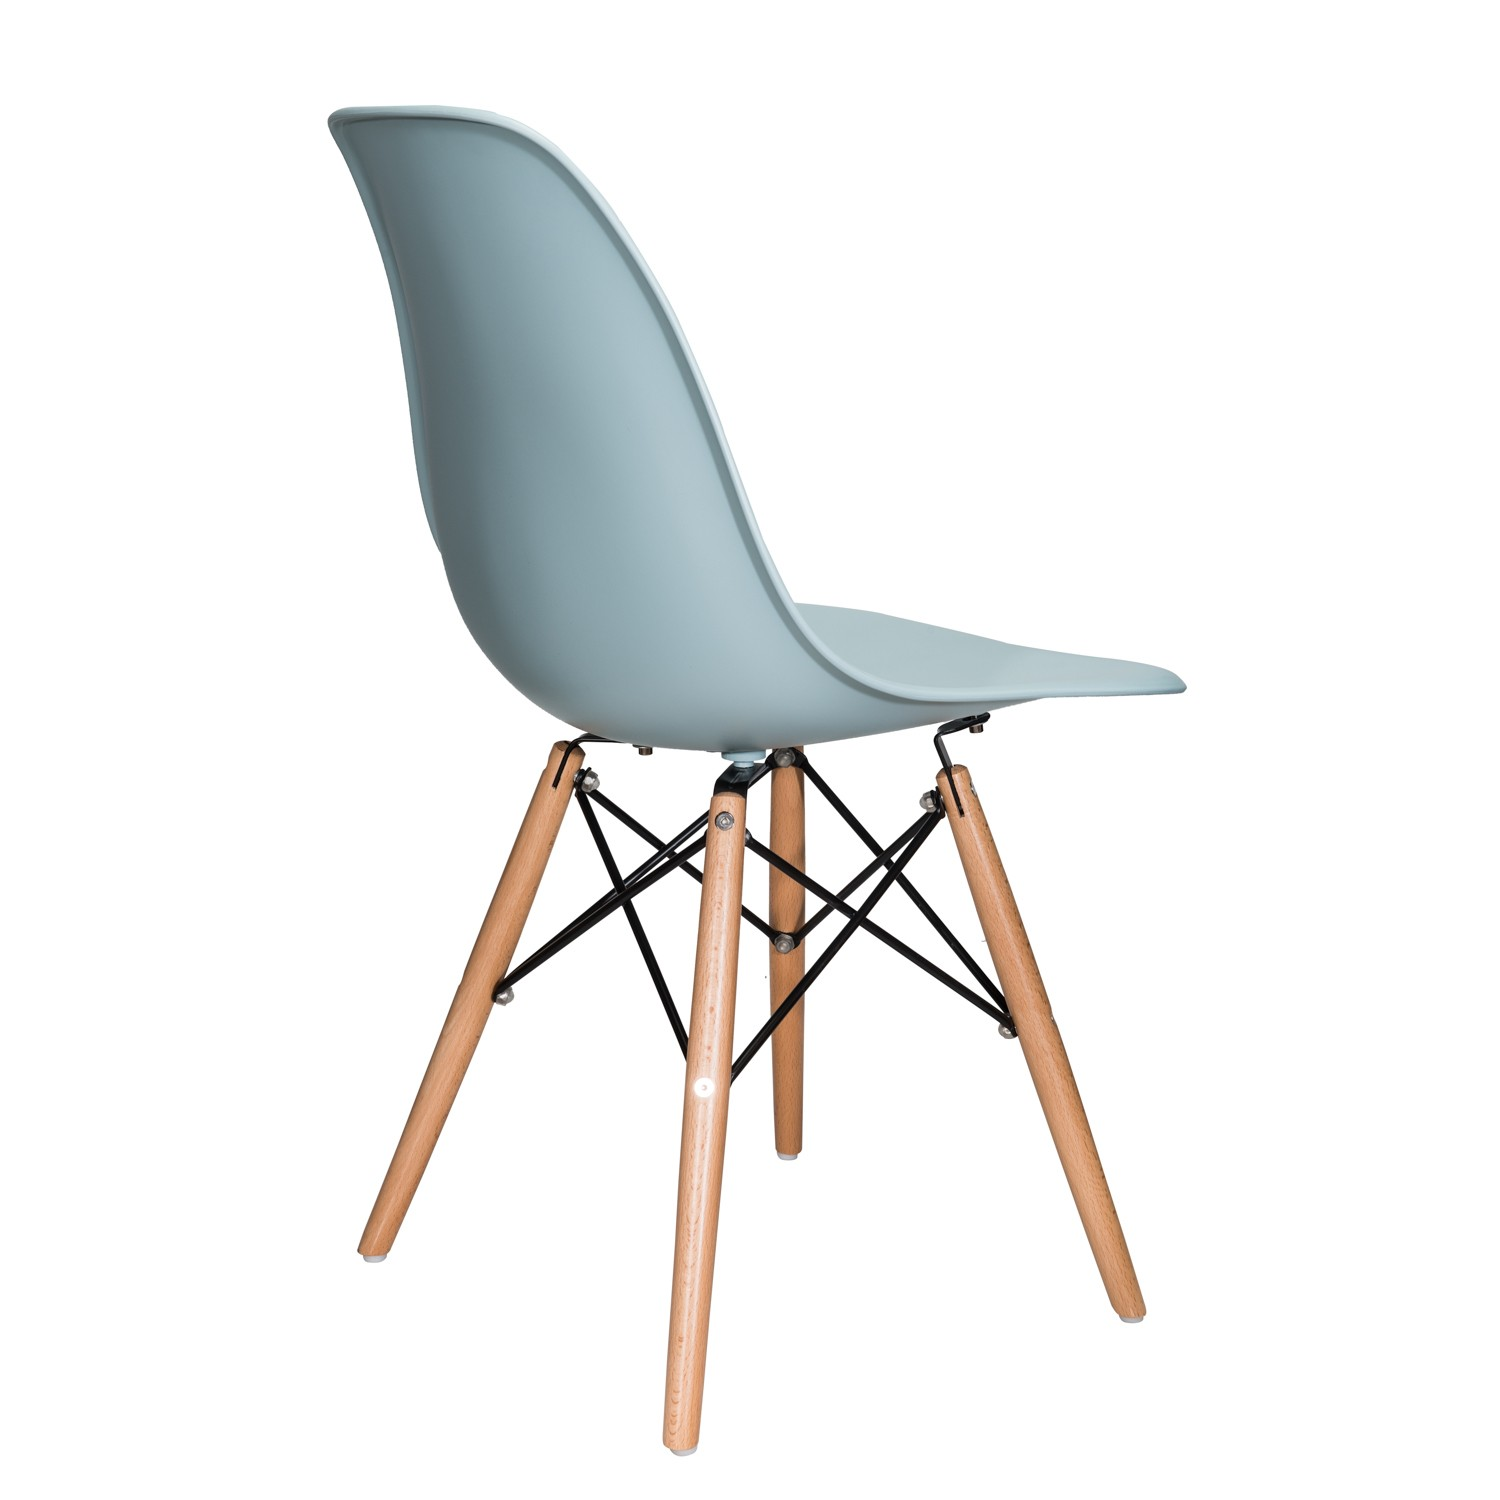 eiffel dining chair with beech legs best baby chairs for toddlers nature series ice blue eames style dsw molded plastic